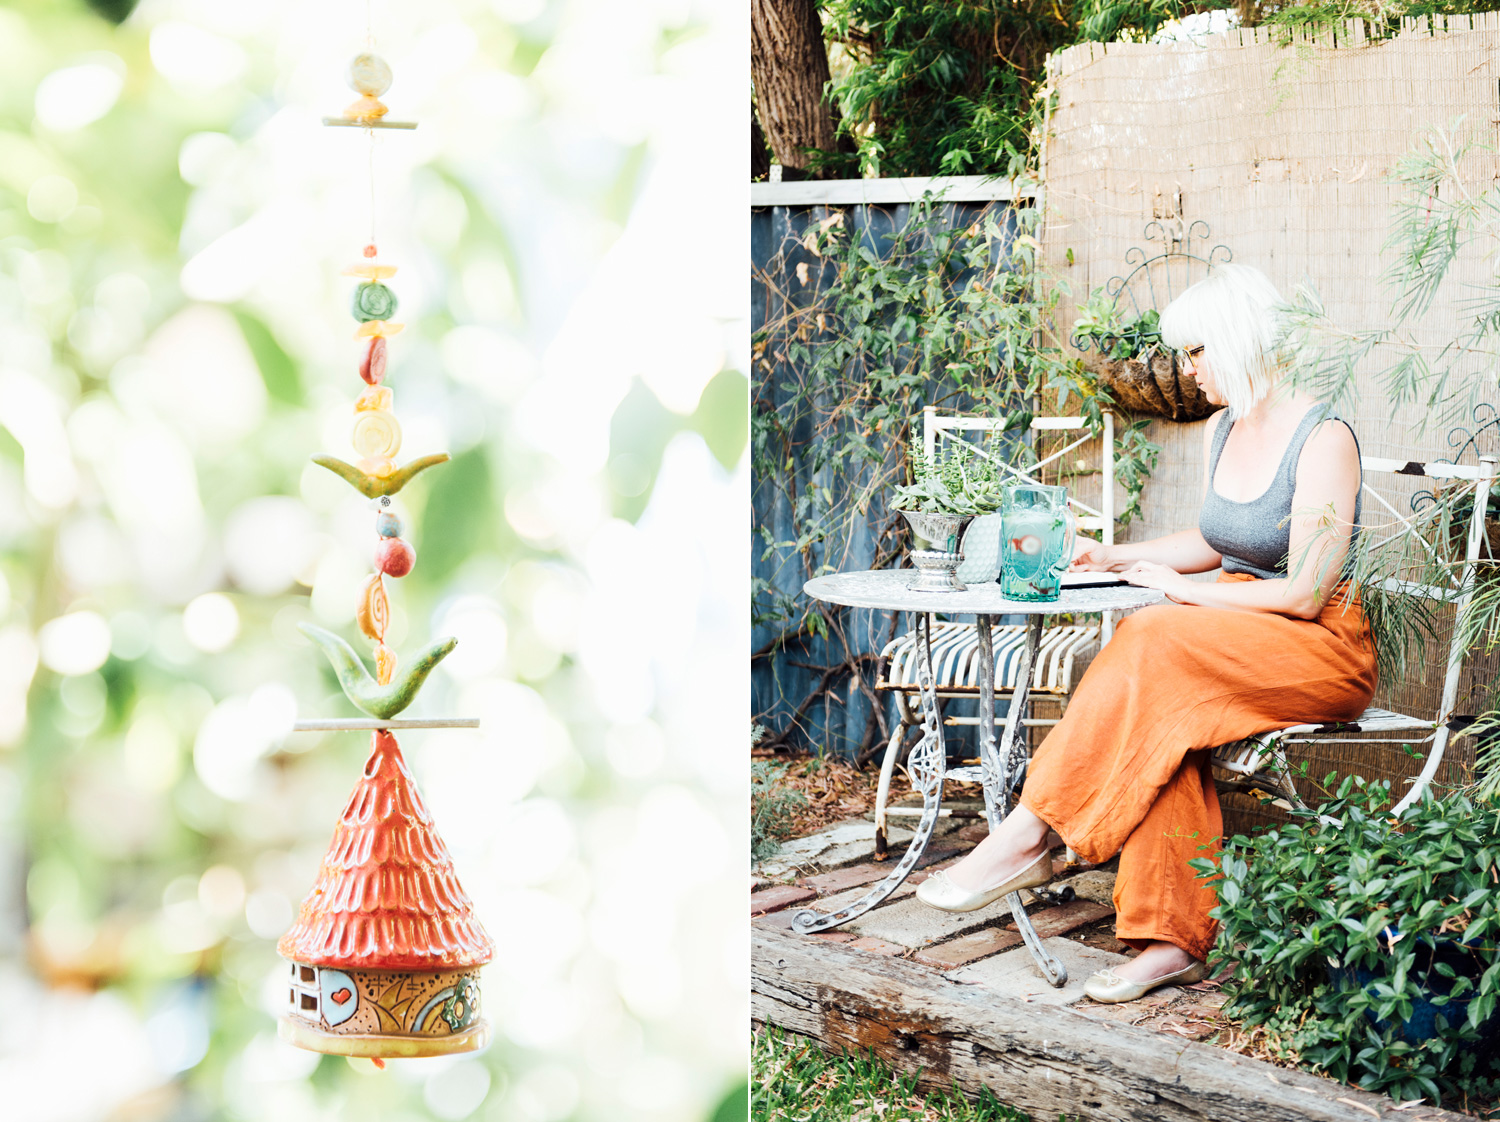 052-katie-mitchell-in-the-studio-perth-ceramicist-winterwares.jpg